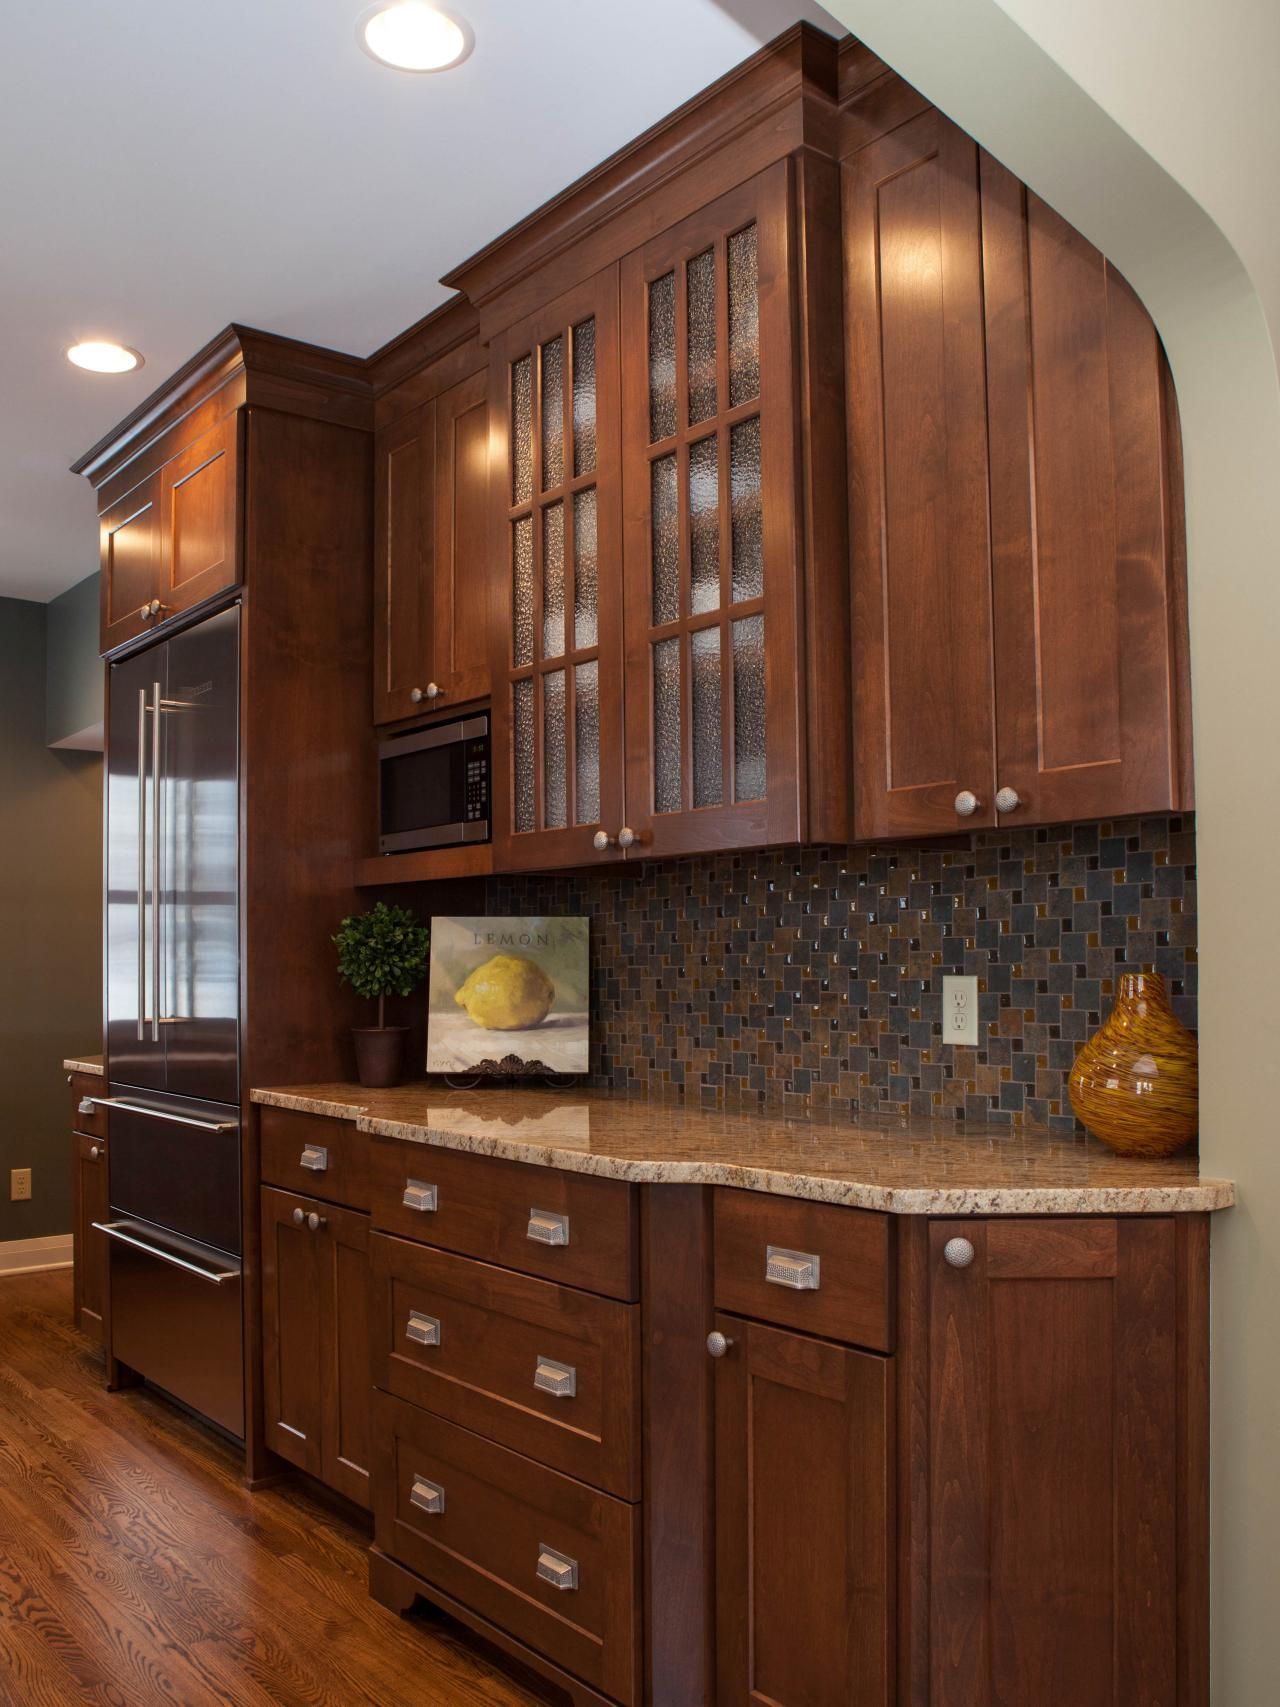 This craftsman style home was built in the 1940s and remodeled to preserve the historical character while adding modern amenities. The updated kitchen features Alder cabinetry with glass-front cabinets and an understated backsplash that brings out the warm browns in the wood. #craftsmanstylehomes